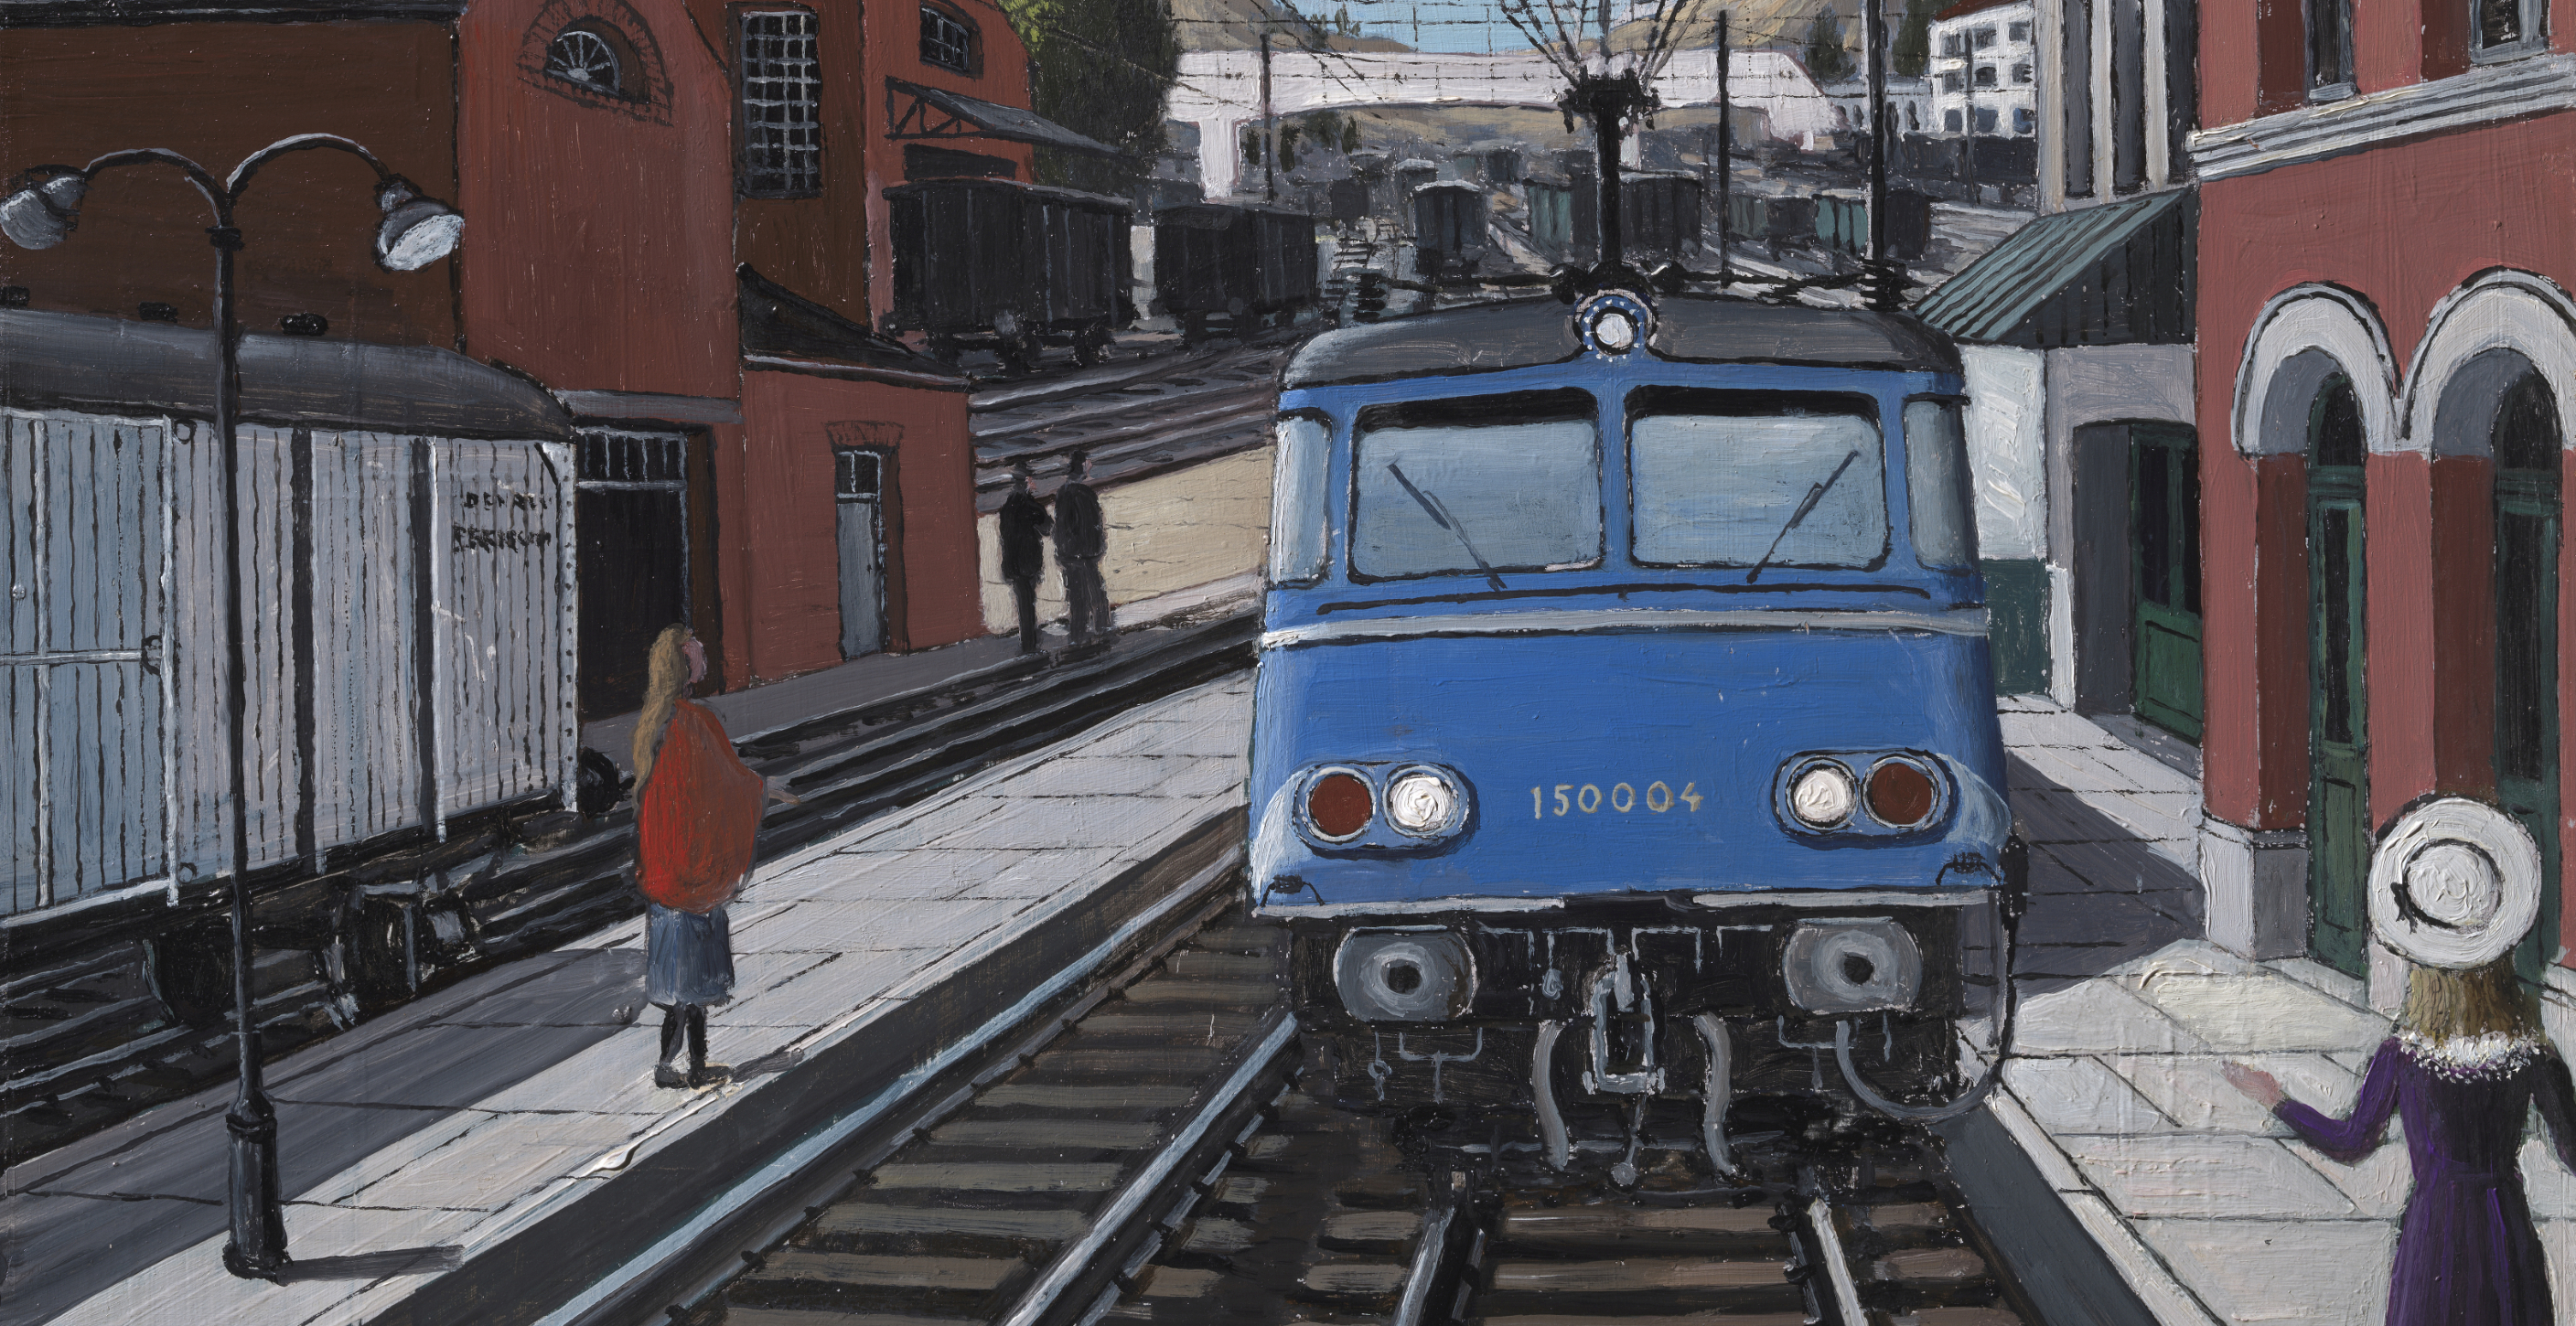 Quatre oeuvres de Paul Delvaux viennent compléter la collection de Train World